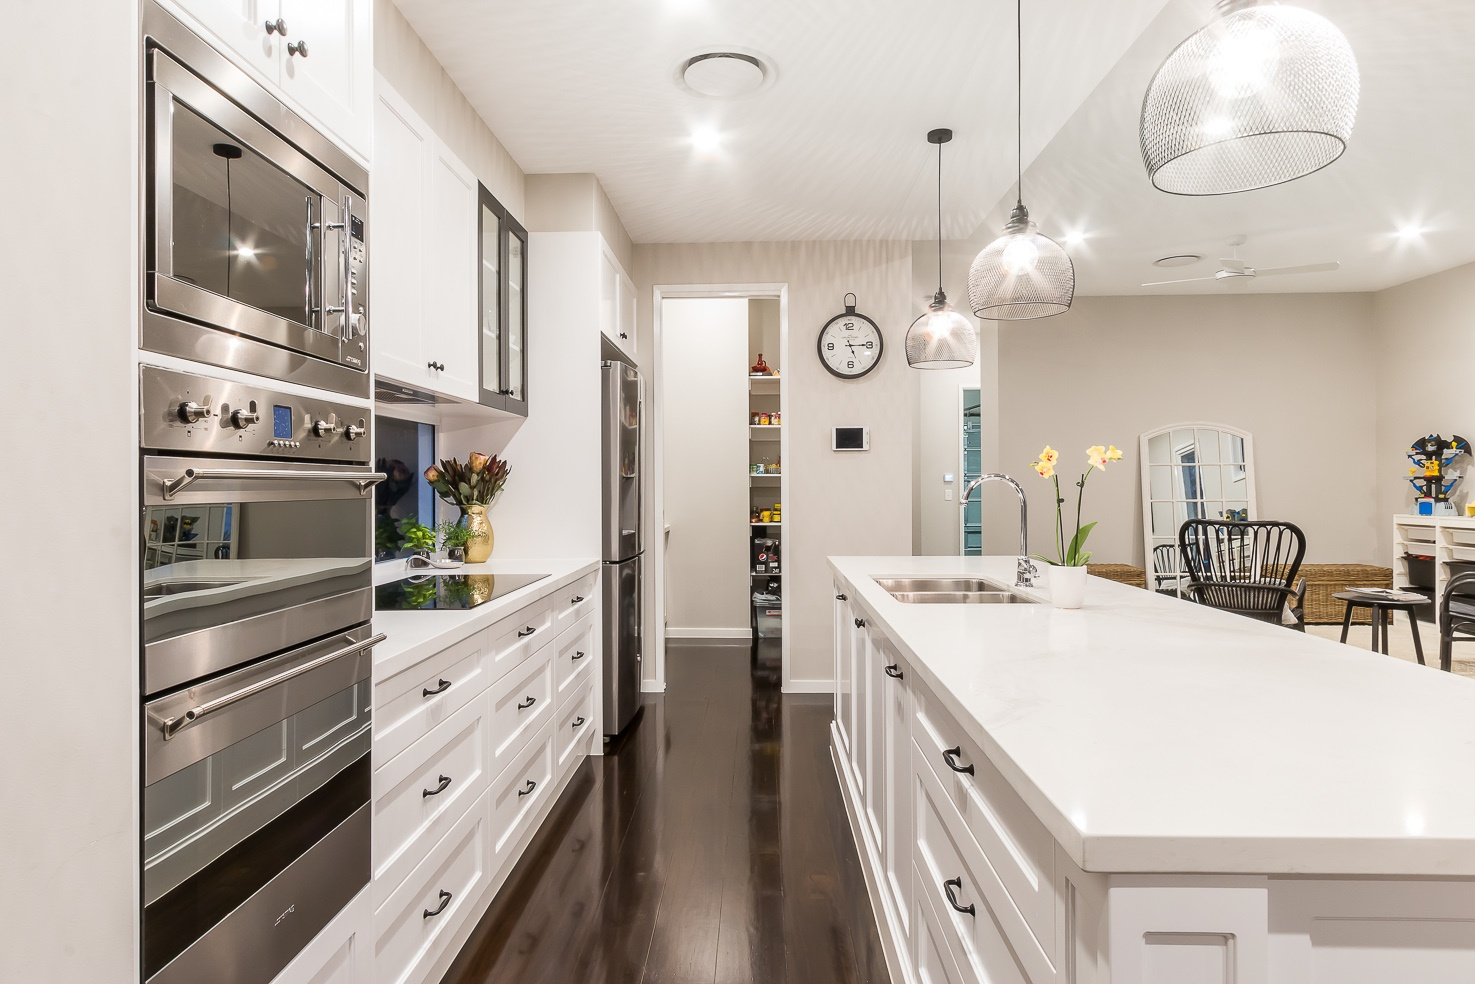 Hamptons style kitchen with timber floor by Kalka